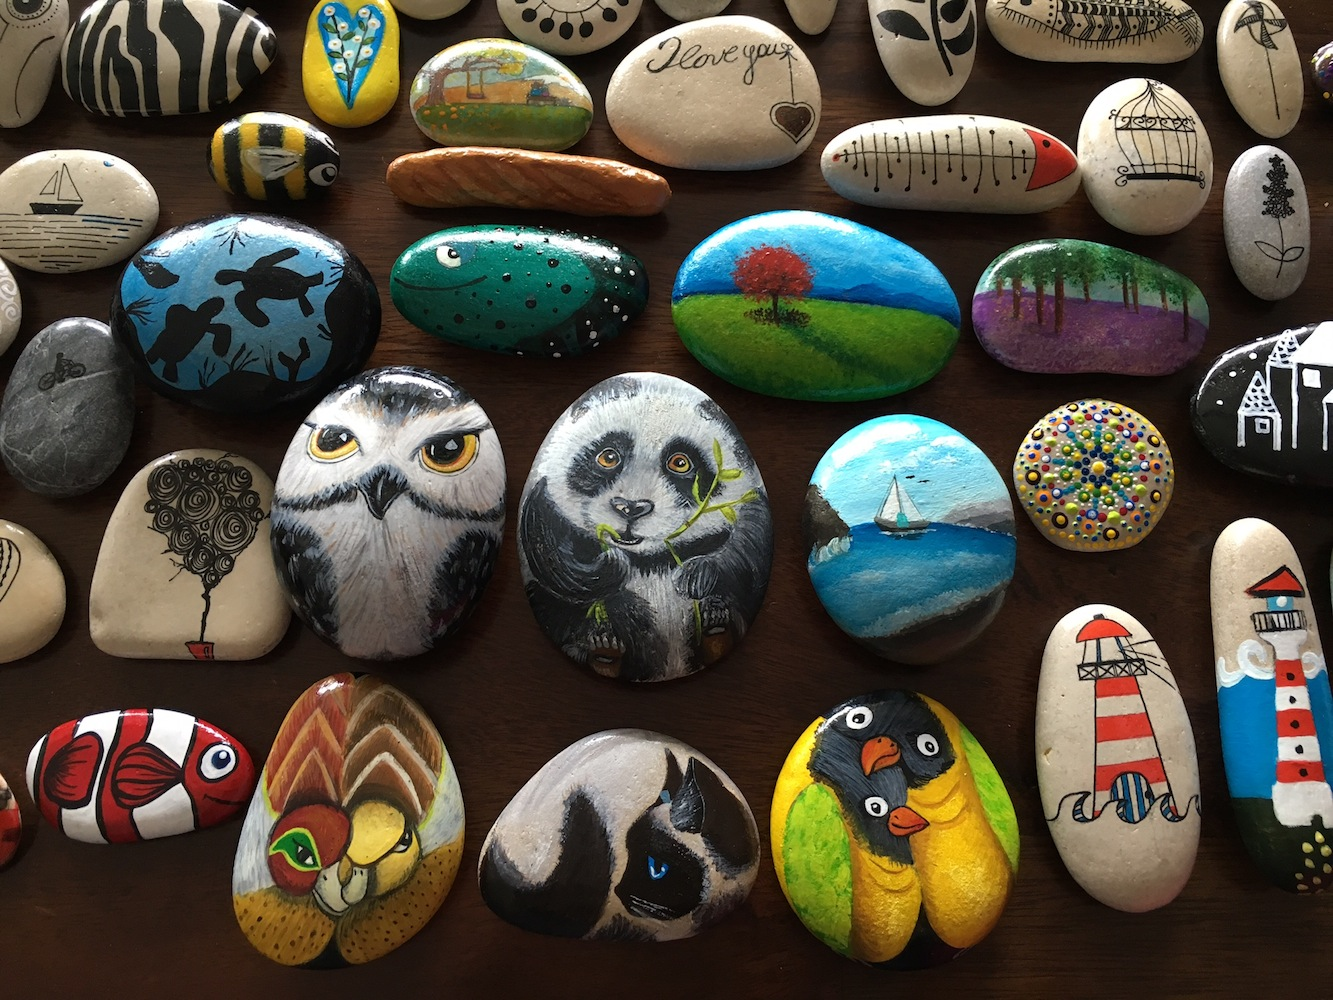 Mini pices of art, handpainted pebbles from Crete in a variety of sizes